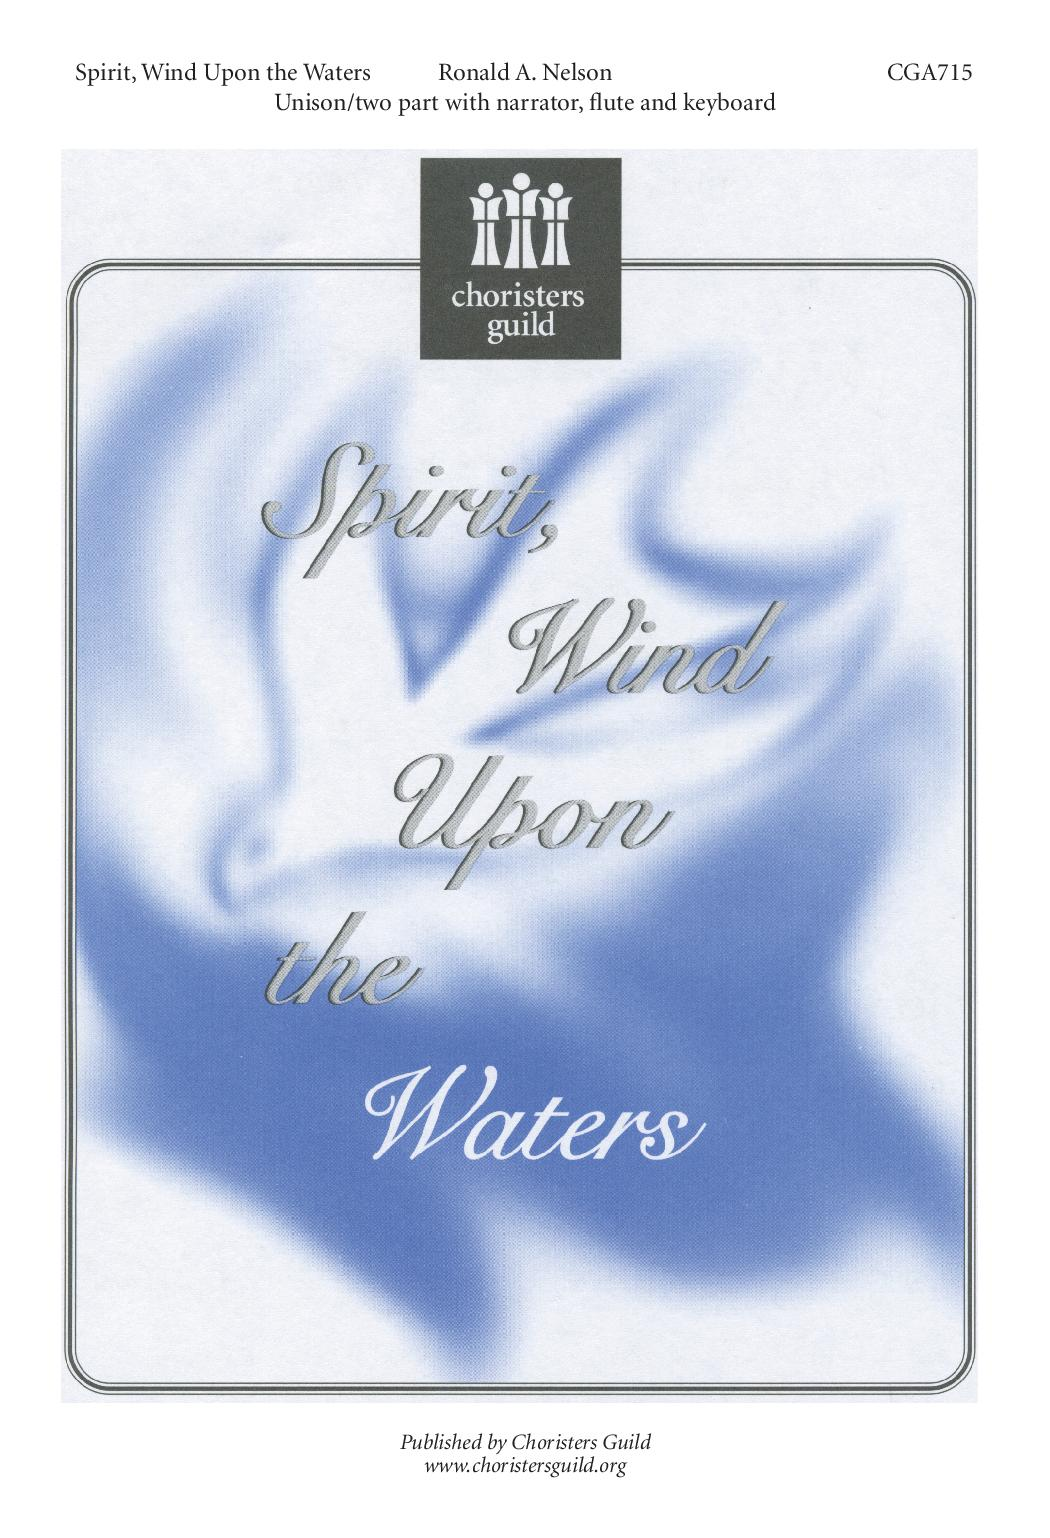 Spirit, Wind Upon the Waters